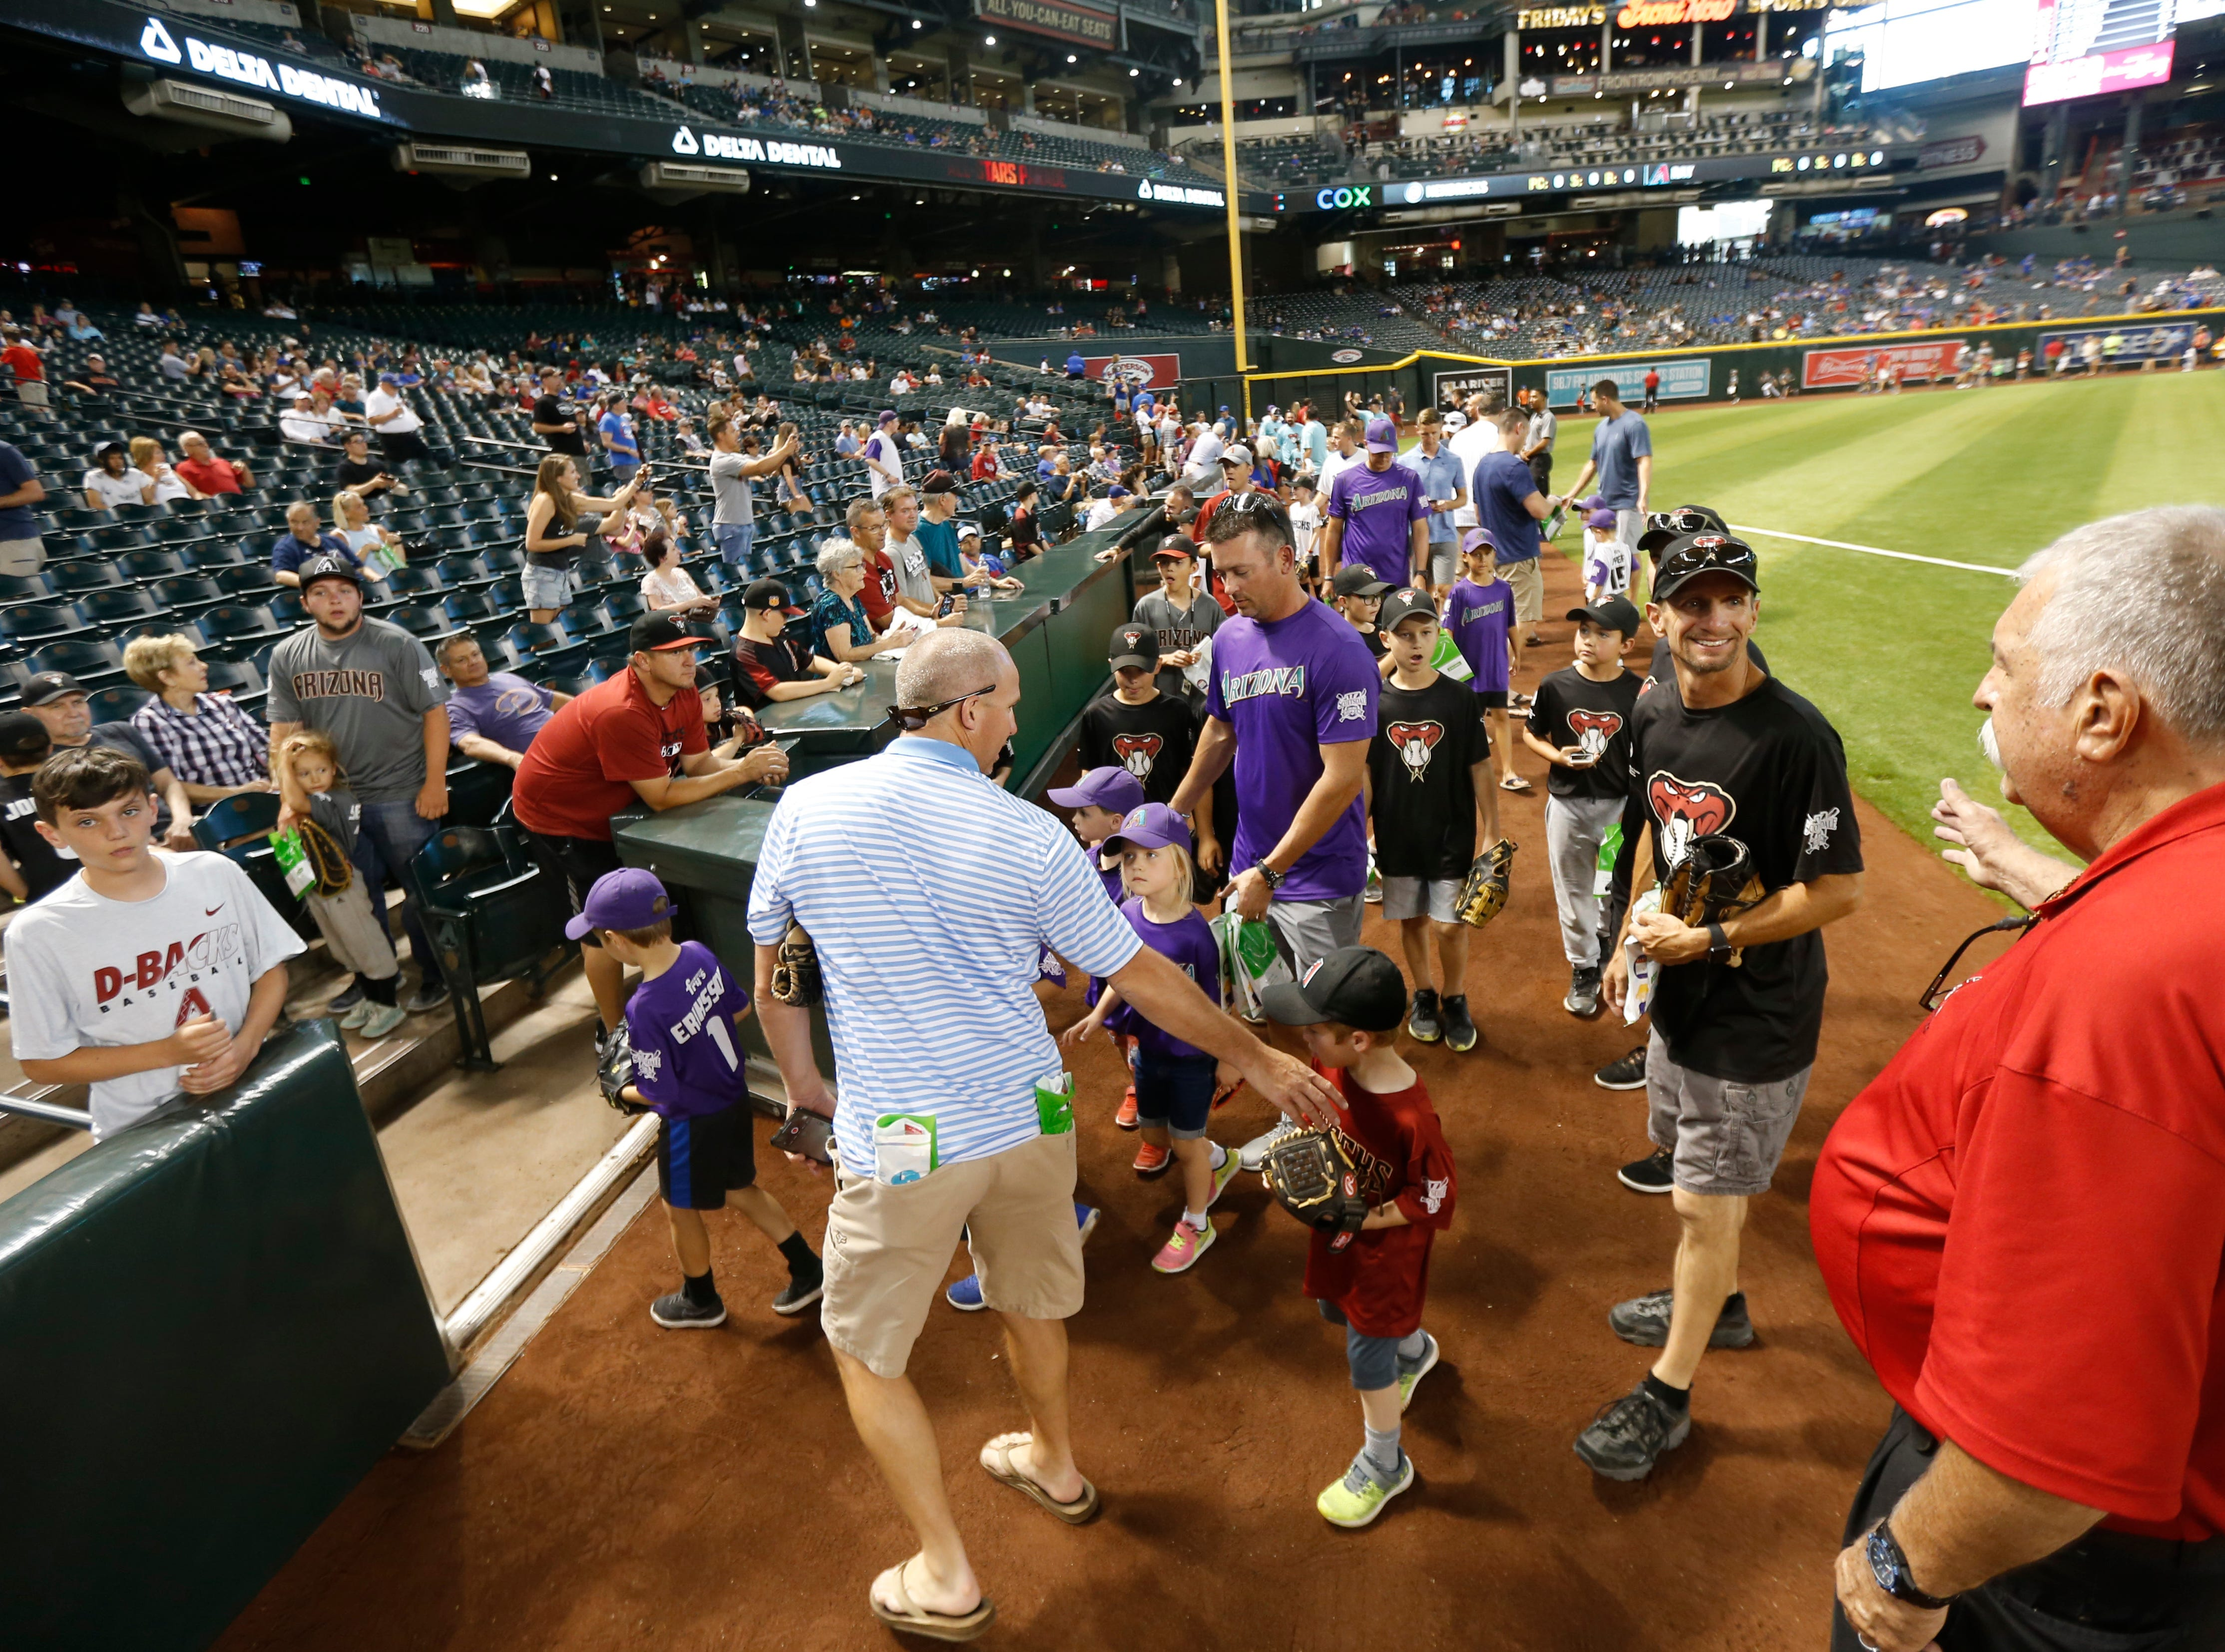 Fans make their way off the field after walking the dirt in the outfield during the Arizona All-Stars Parade before a Cubs vs. Diamondbacks game at Chase Field in Phoenix, Ariz. on April 26, 2019.